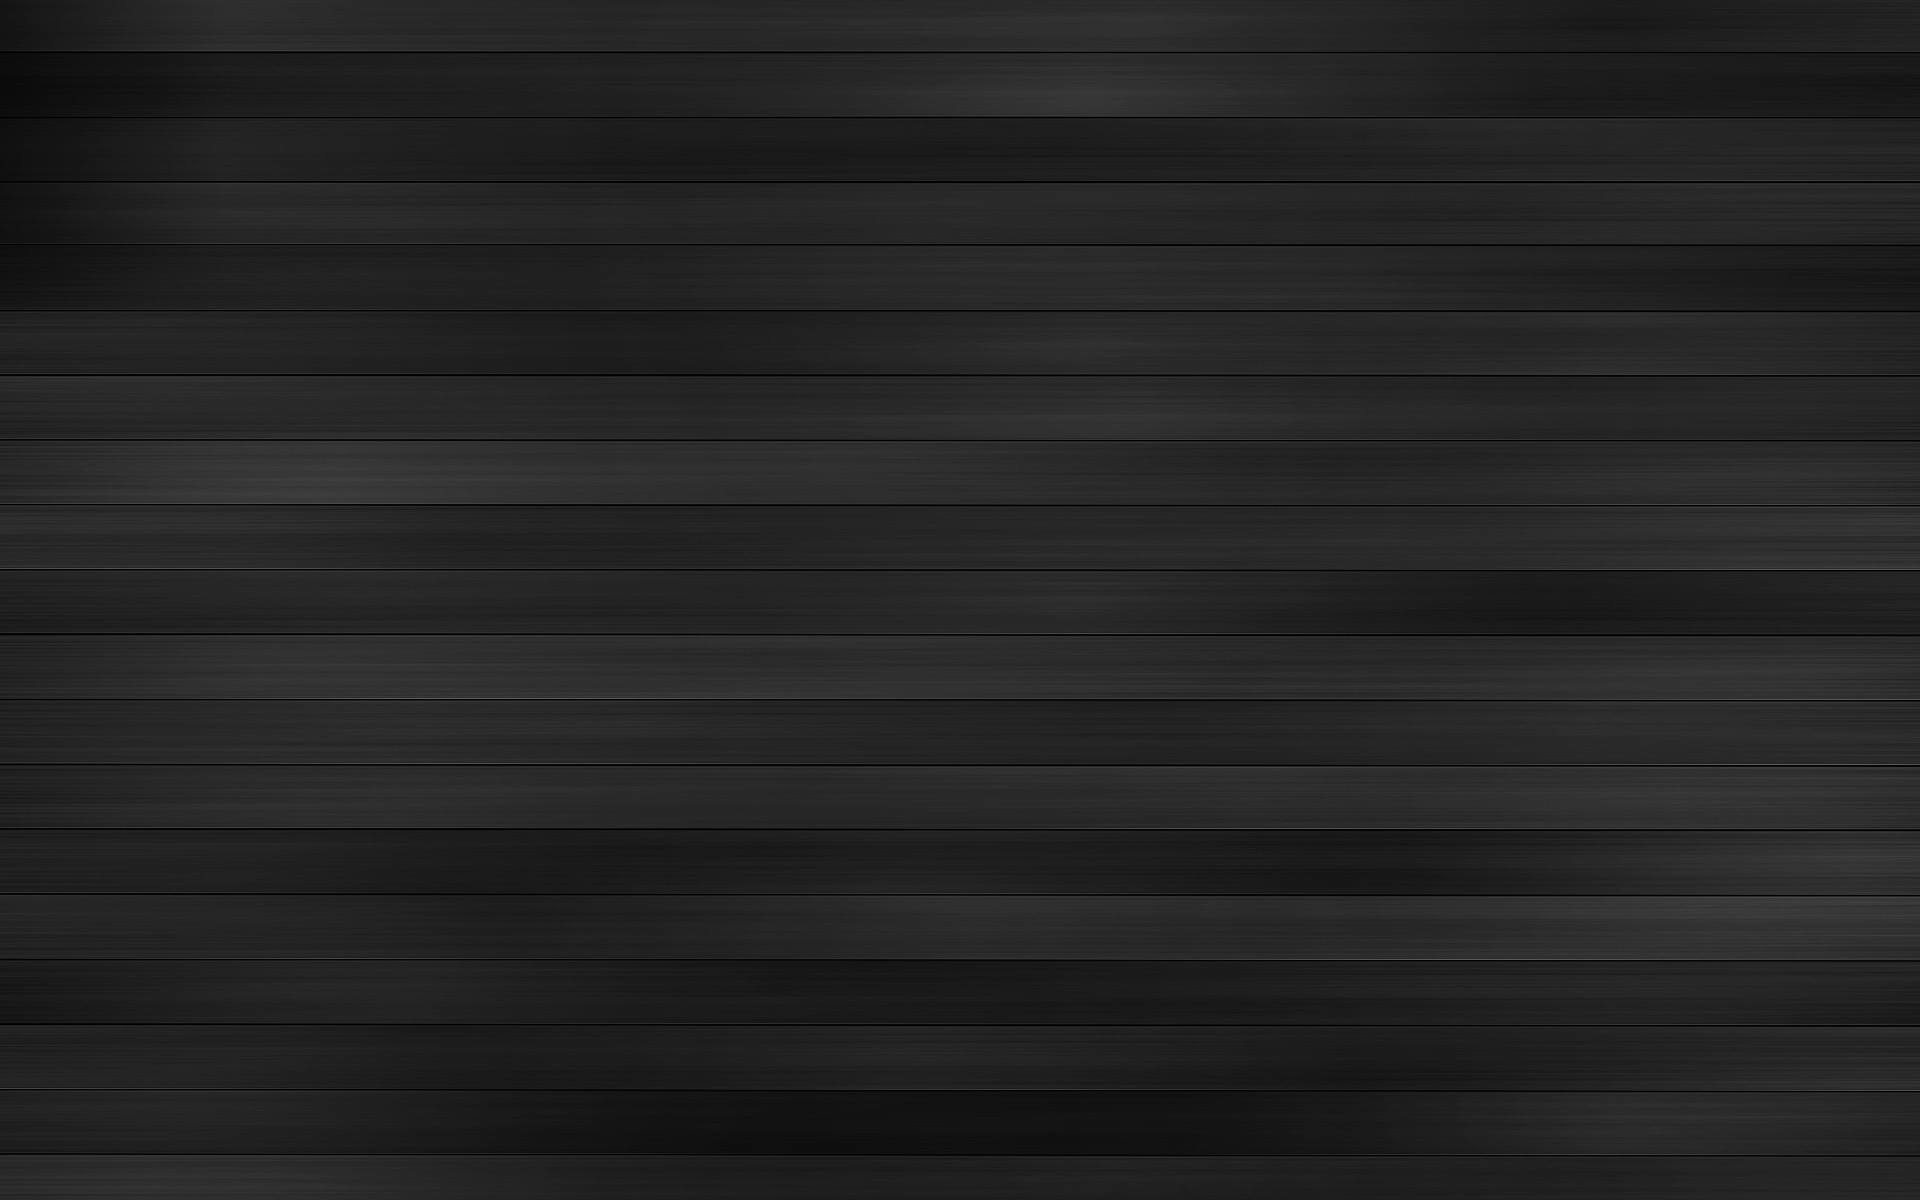 Black wood texture wallpaper 15204 1920x1200